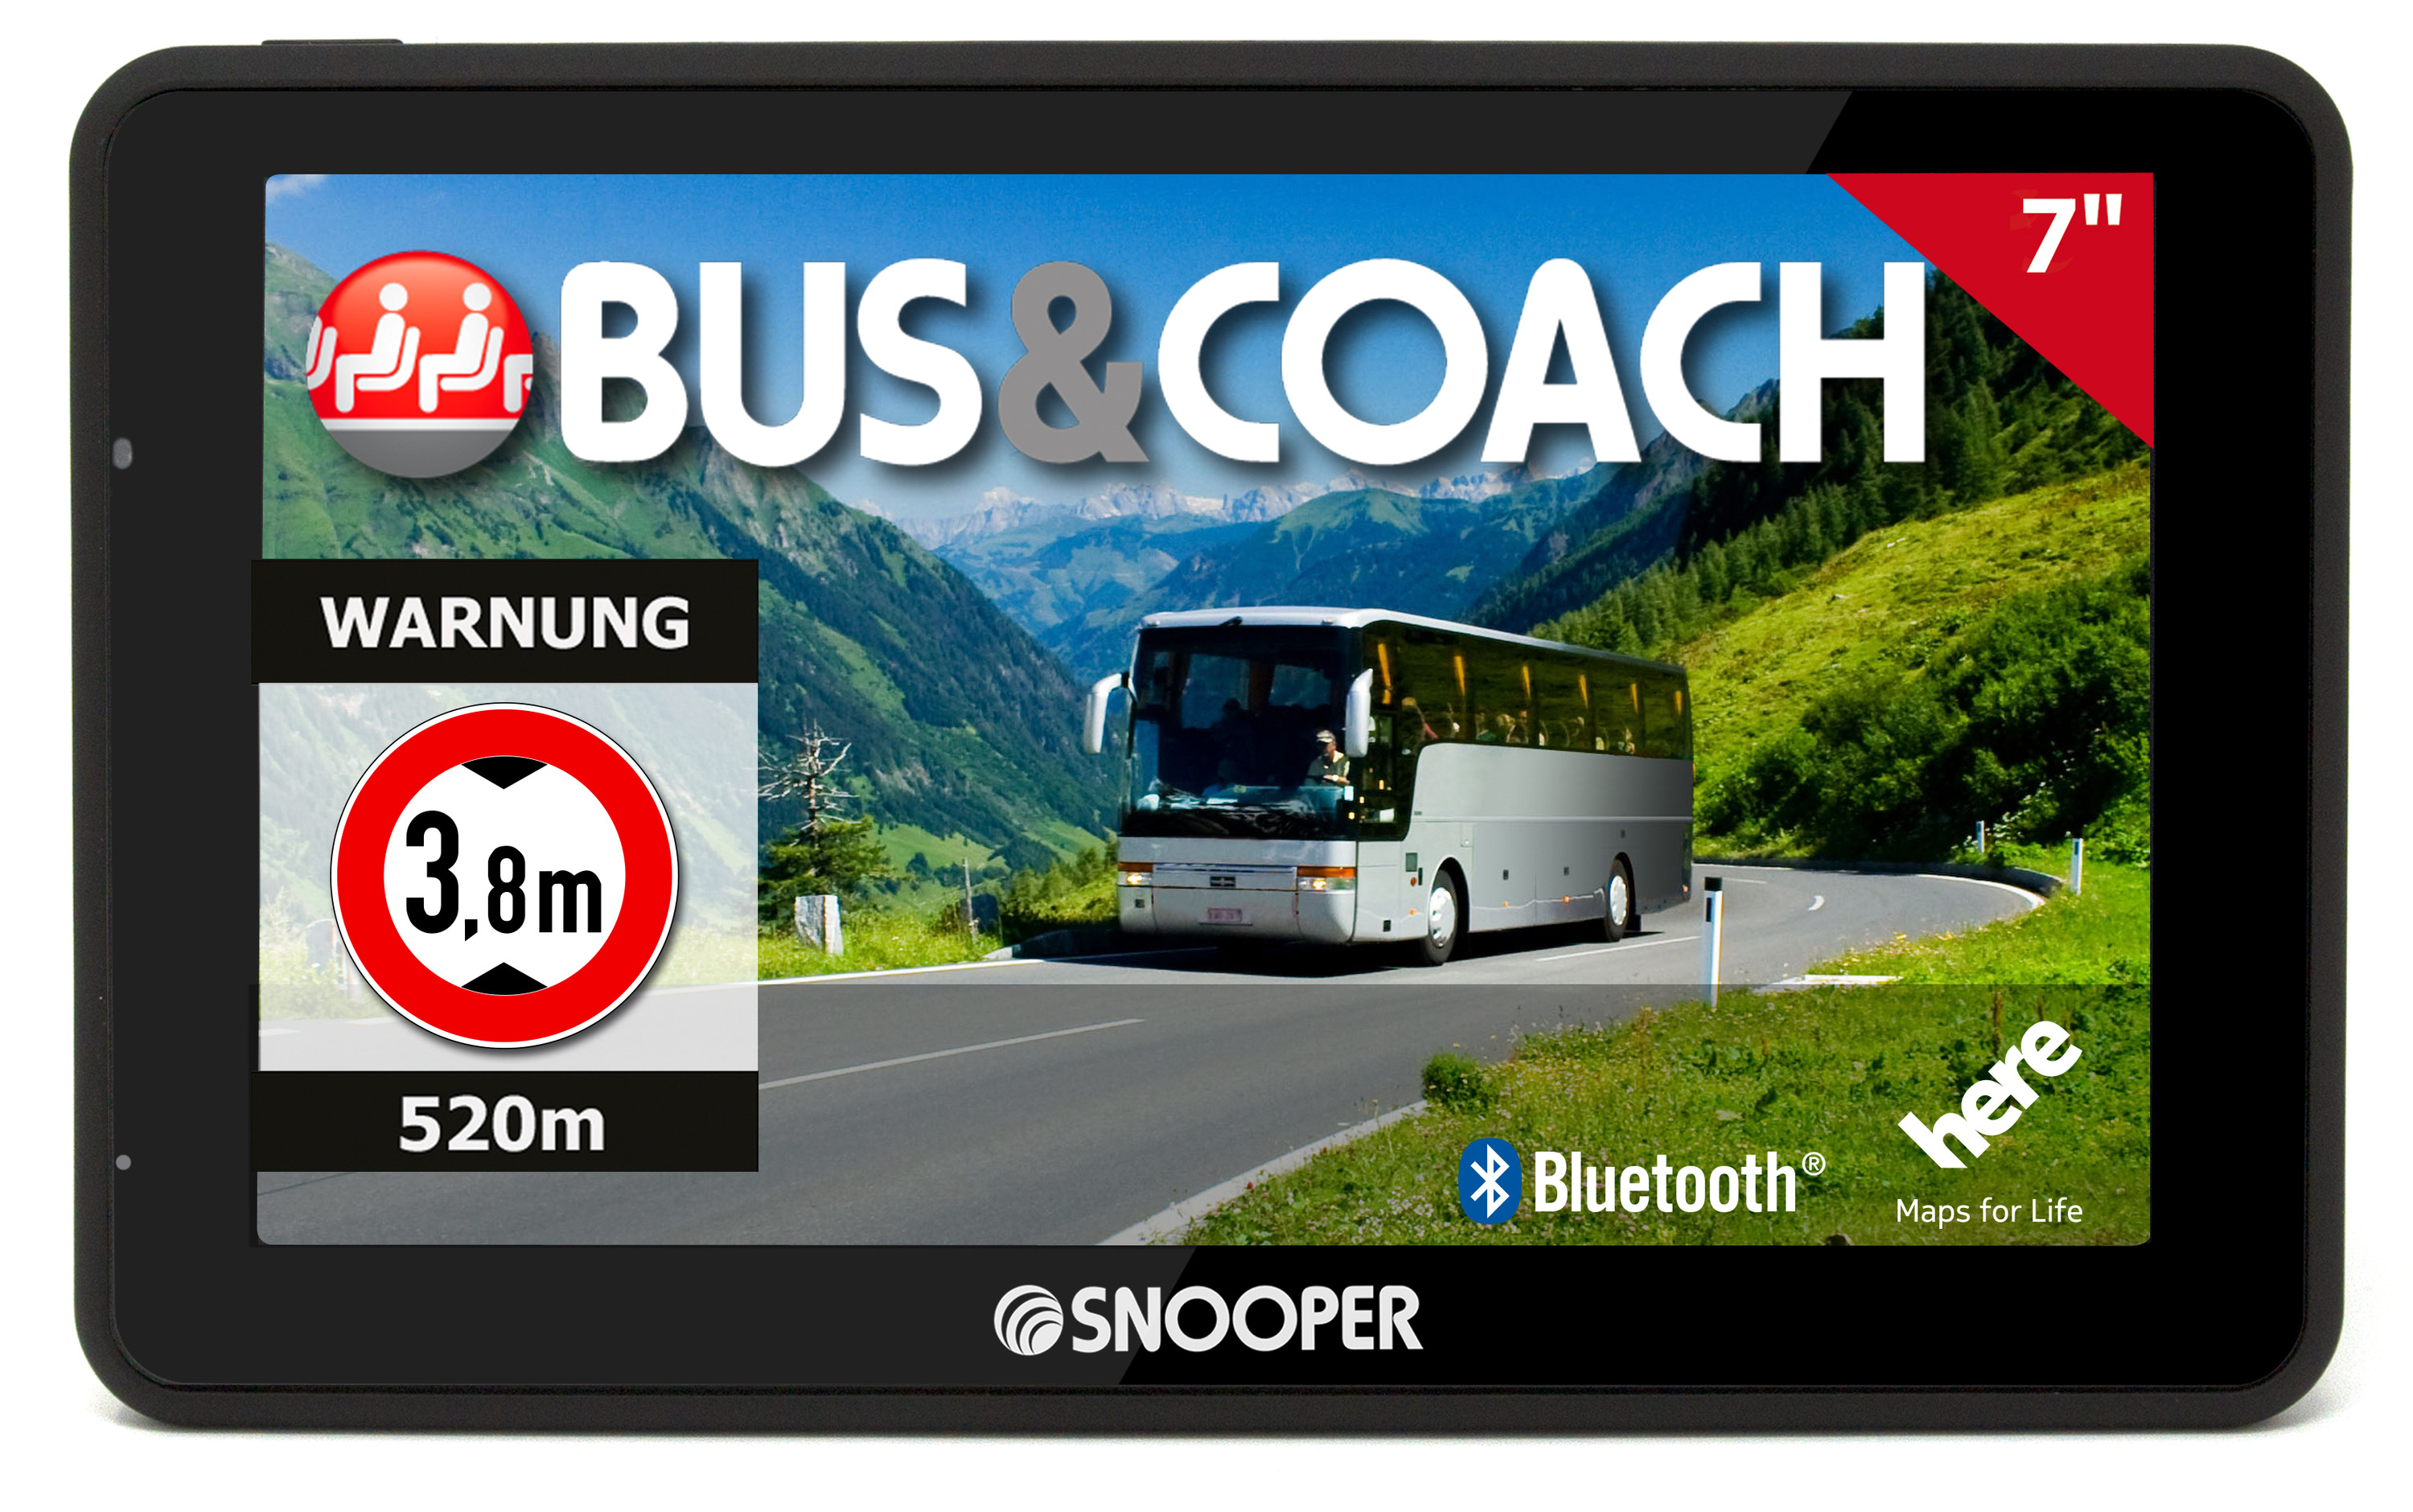 SNOOPER Bus&Coach PRO S6900 navigation system for buses and coaches